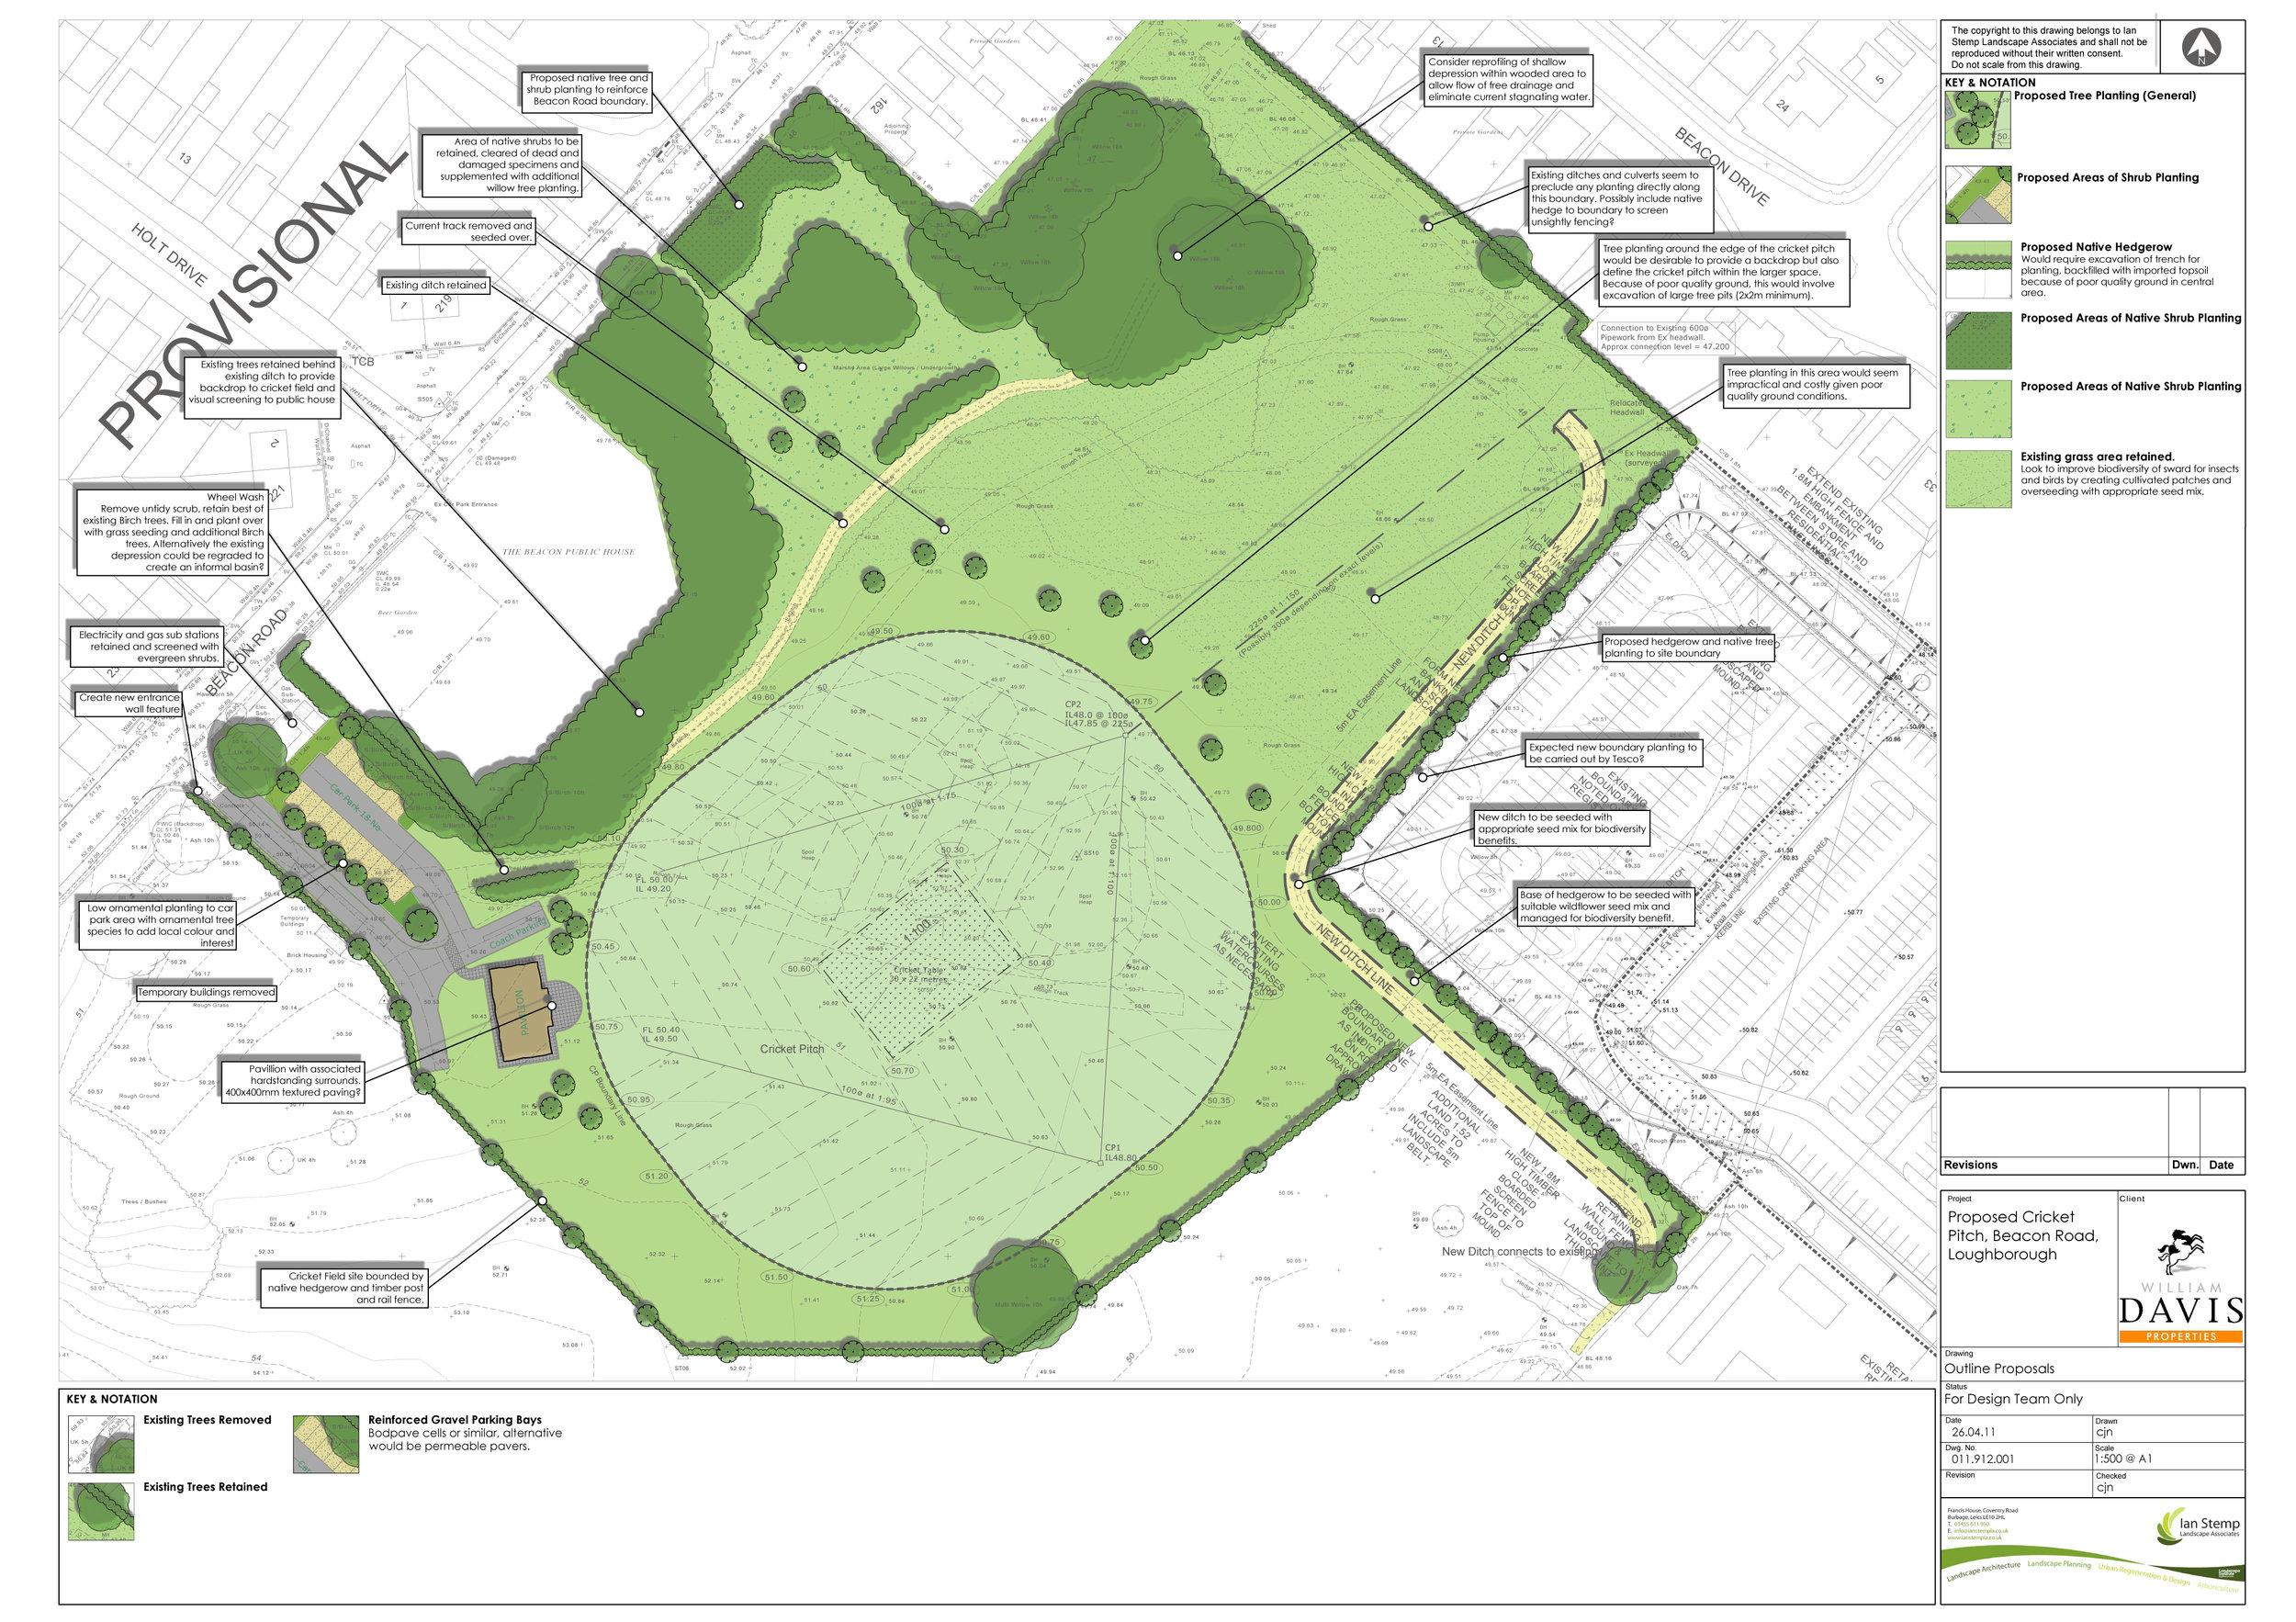 011.912.001 Beacon Road Cricket Ground Outline Proposals copy.jpg